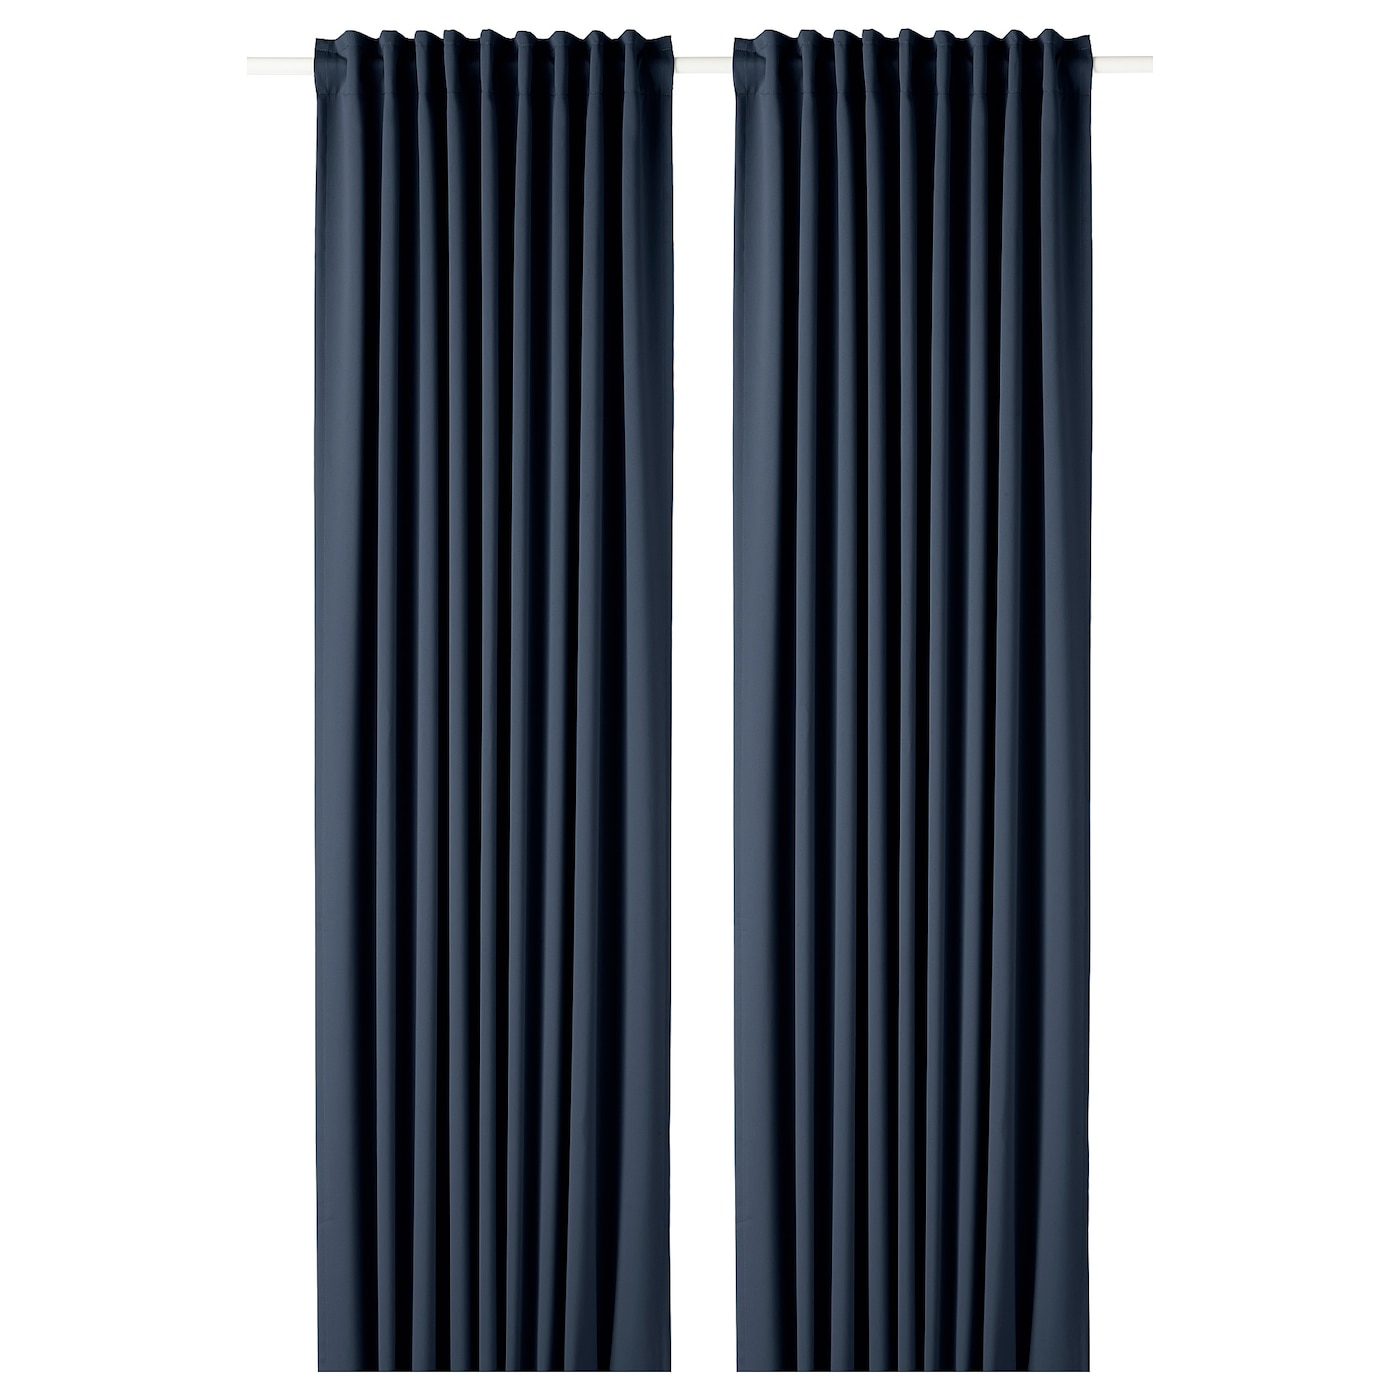 Block Out Curtains, 1 Pair Majgull Dark Blue Regarding Glasgow Curtain Tier Sets (View 11 of 20)